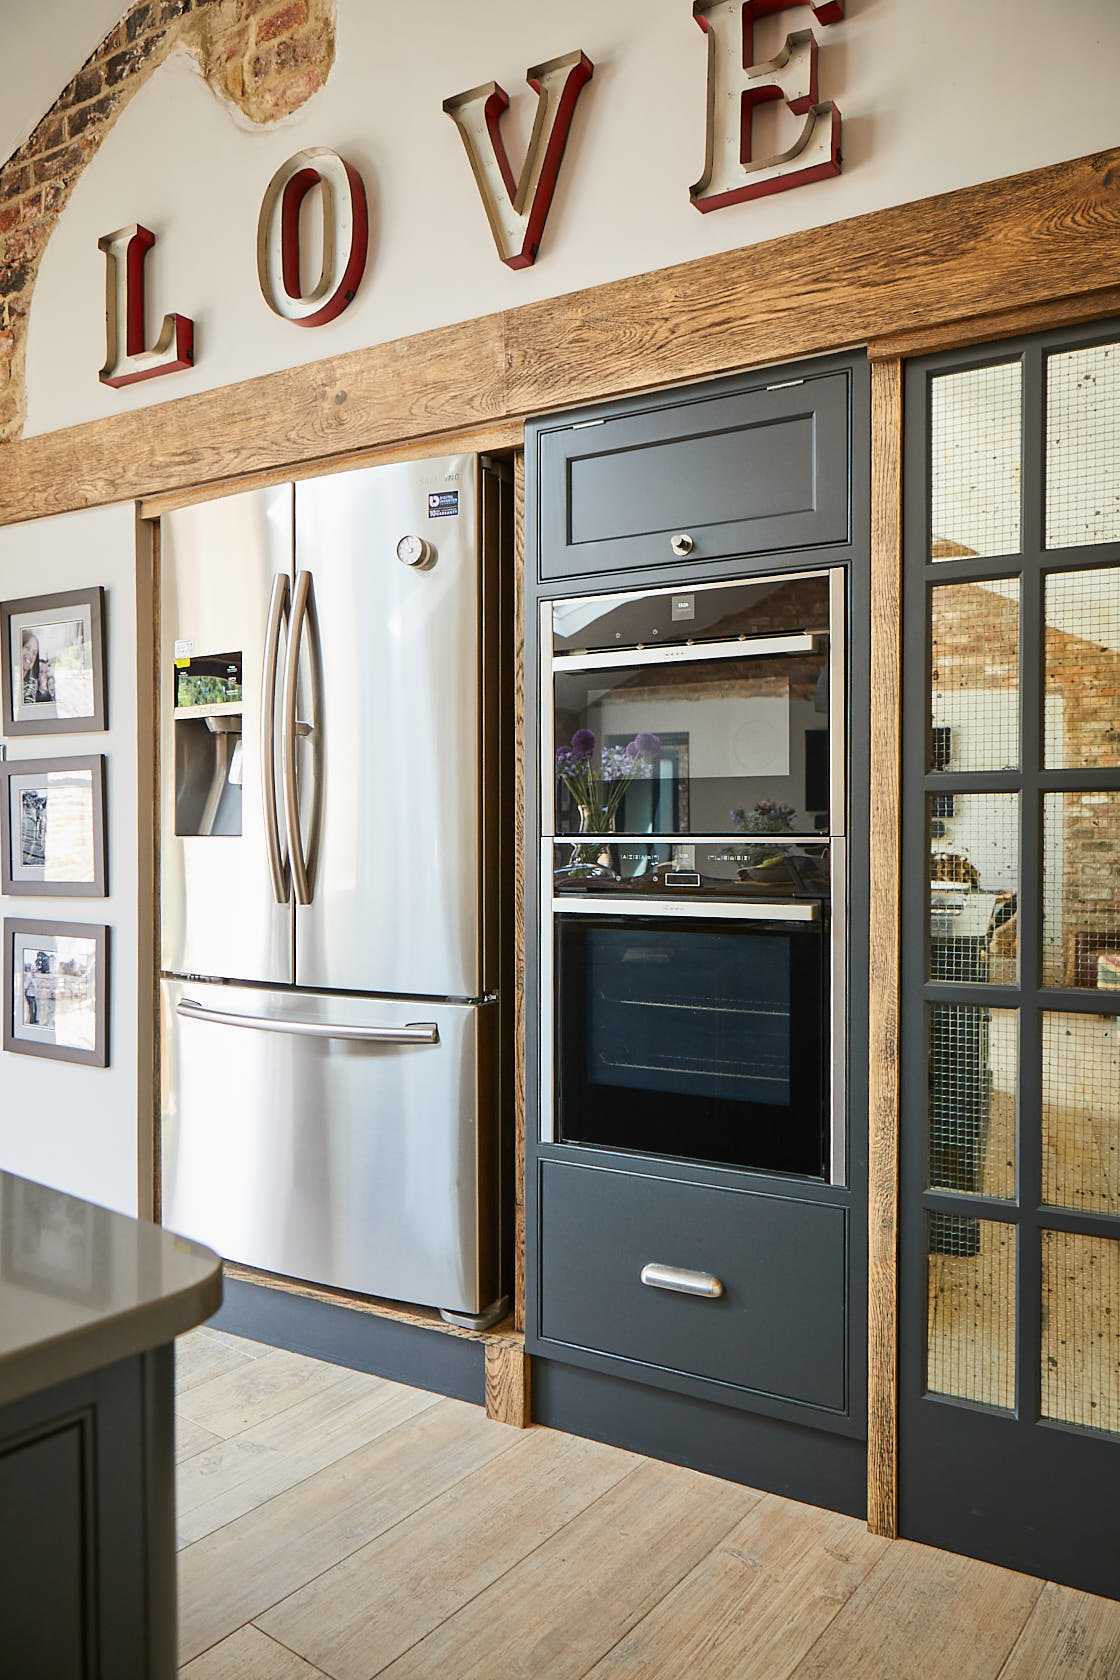 Double over and stainless steel fridge flush with wall in bespoke kitchen design